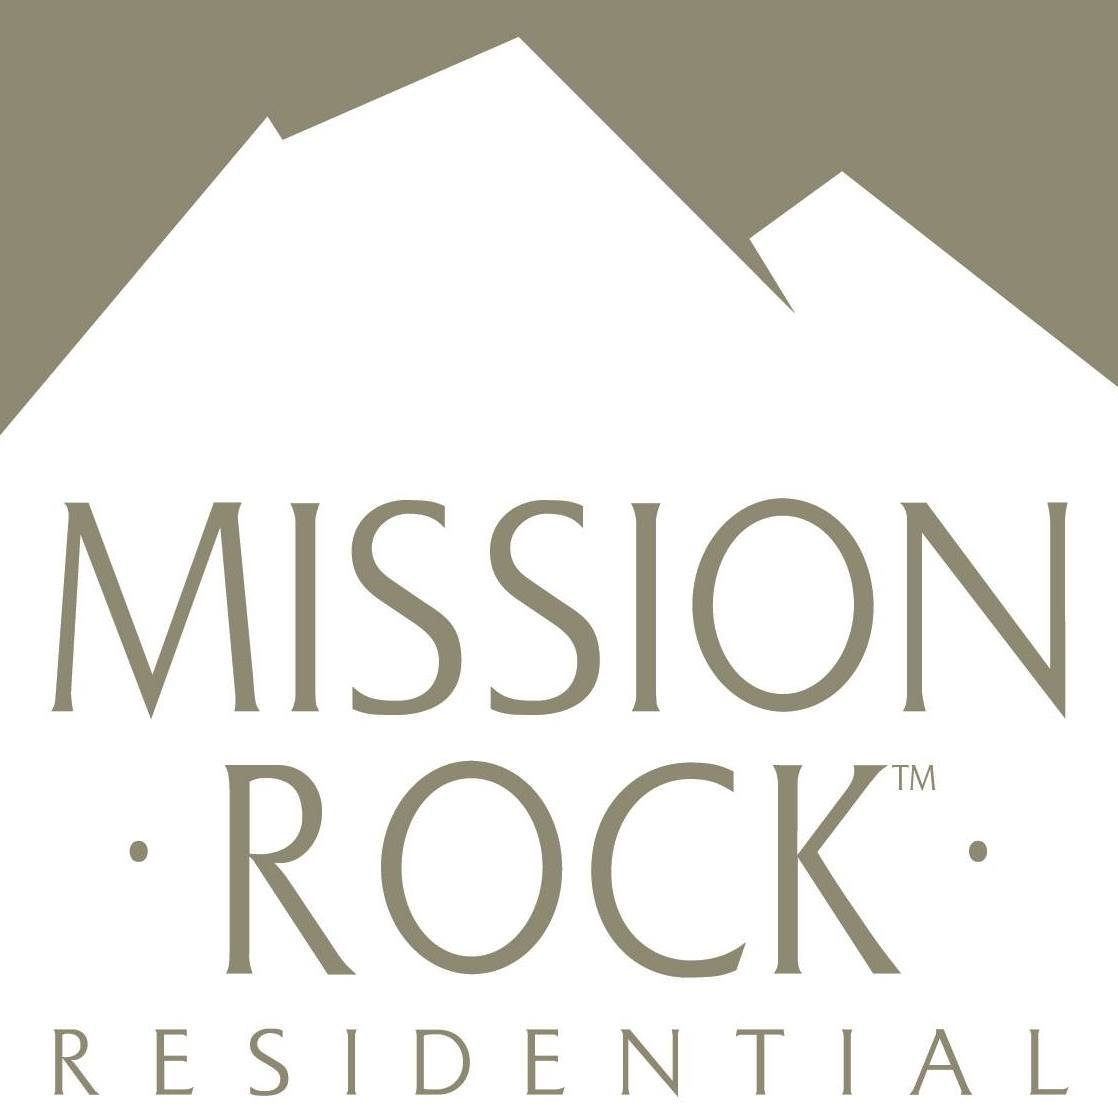 Company logo of Mission Rock Residential